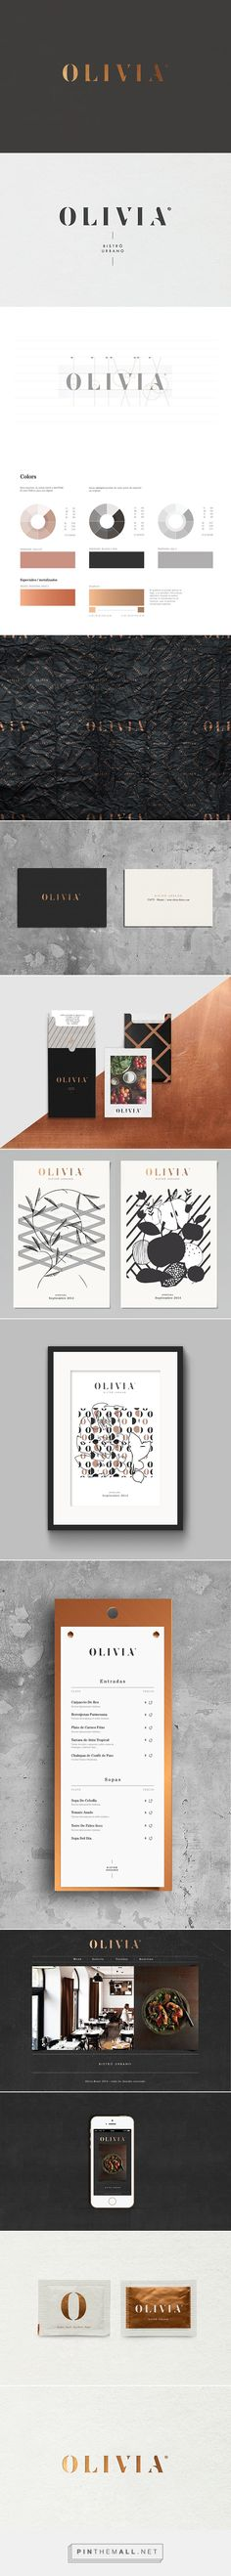 OLIVIA Bistro Urbano on Behance - created via https://pinthemall.net